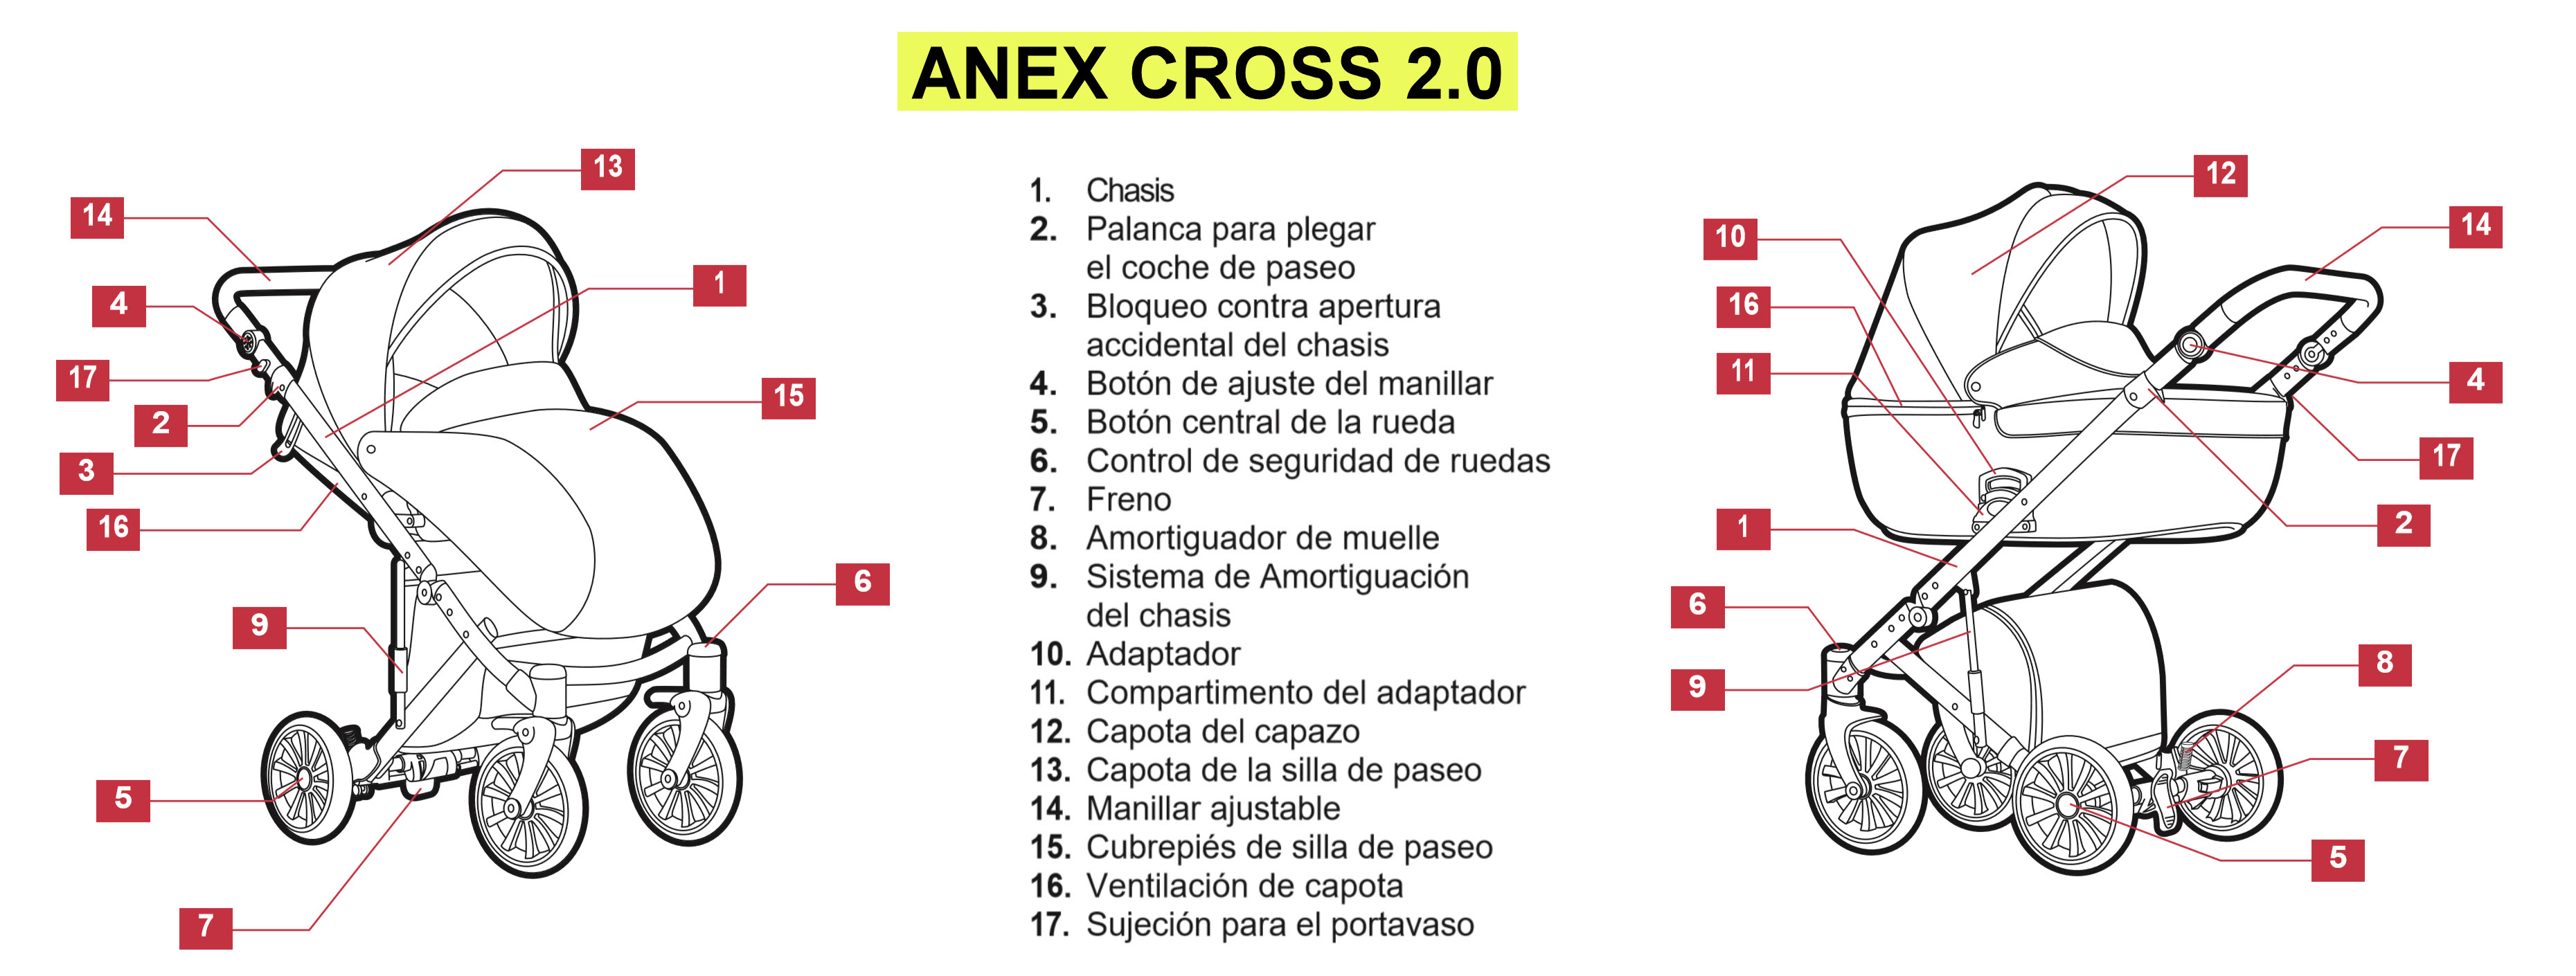 ANEX CROSS 2.0 TECNICO